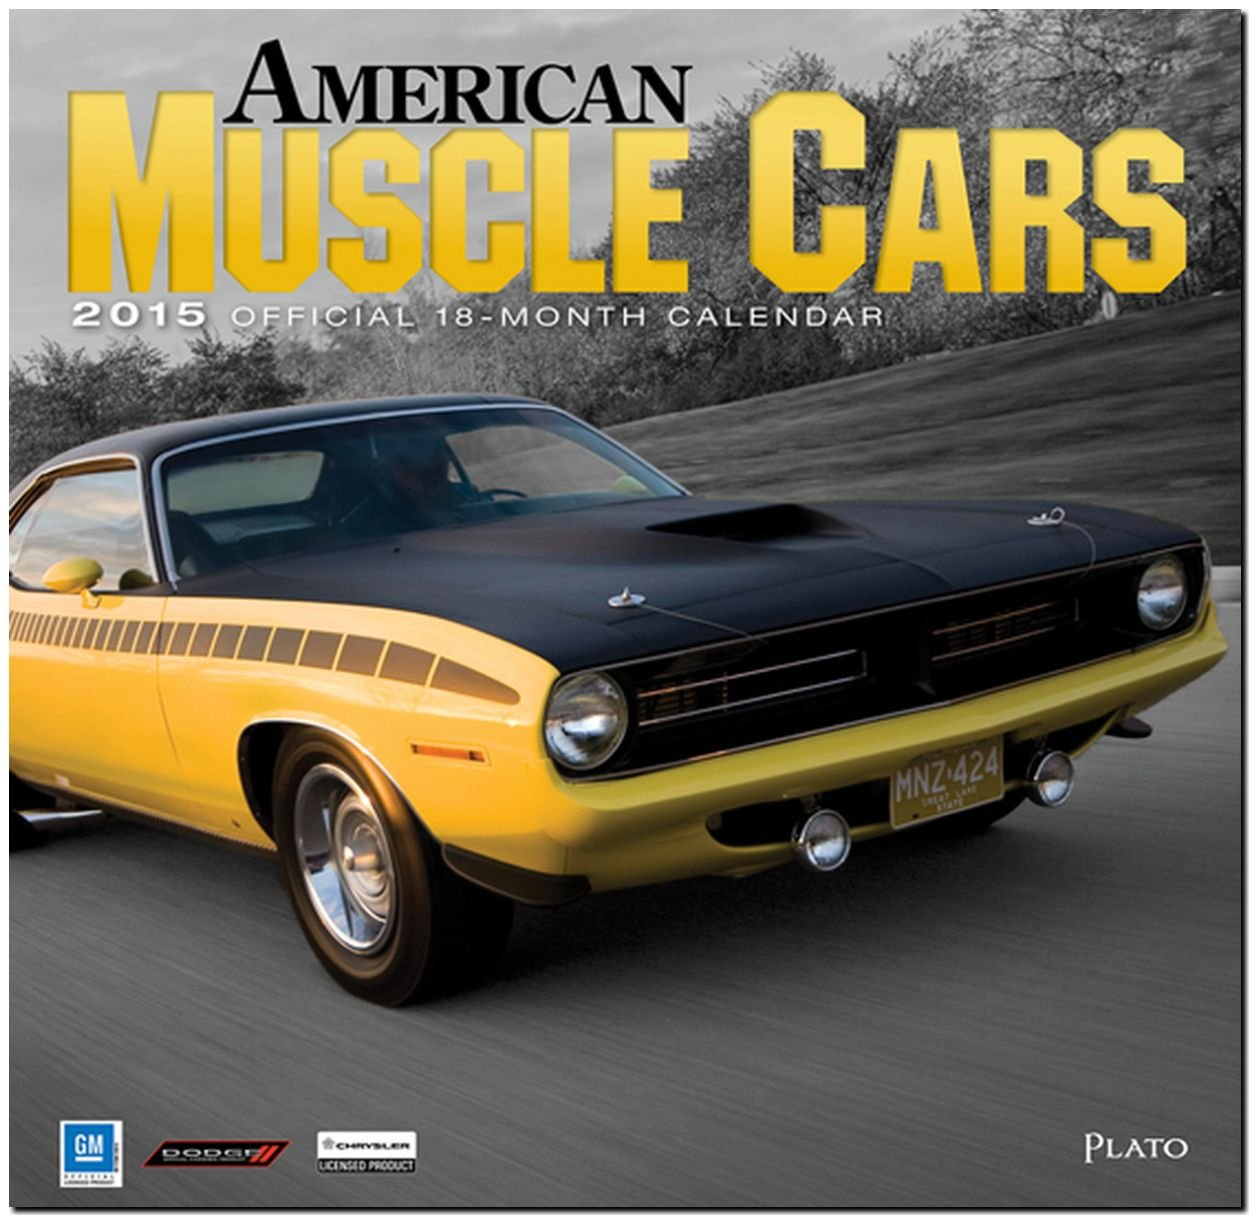 Cheapest Copy Of American Muscle Cars 2015 Square 12x12